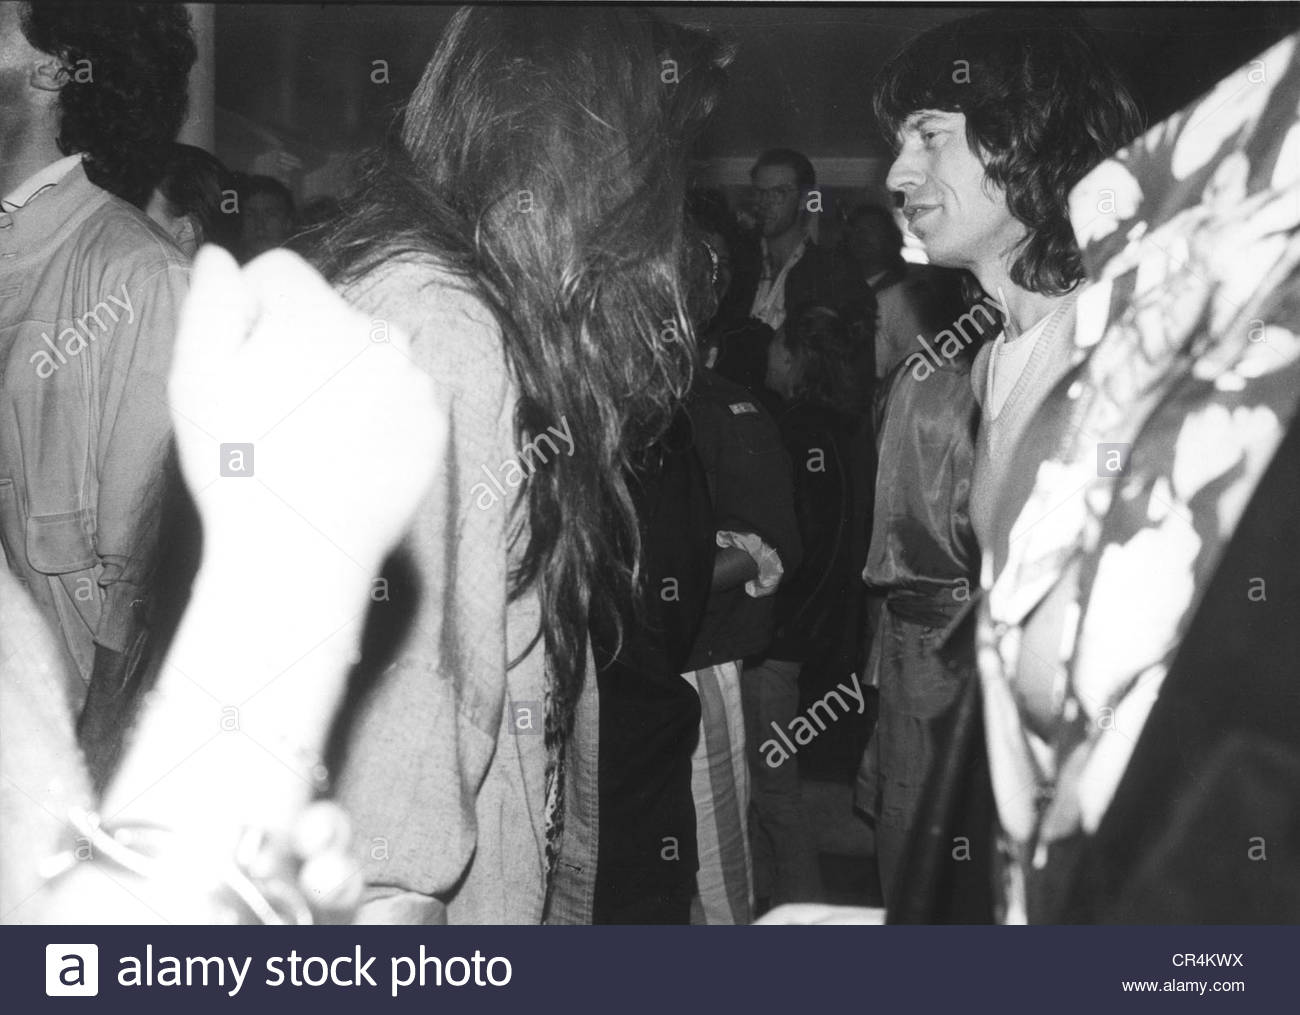 Jagger, Mick, * 18.12.1943, British musician, half length, in the disco 'P1', Munich, Germany, 1986, Additional - Stock Image